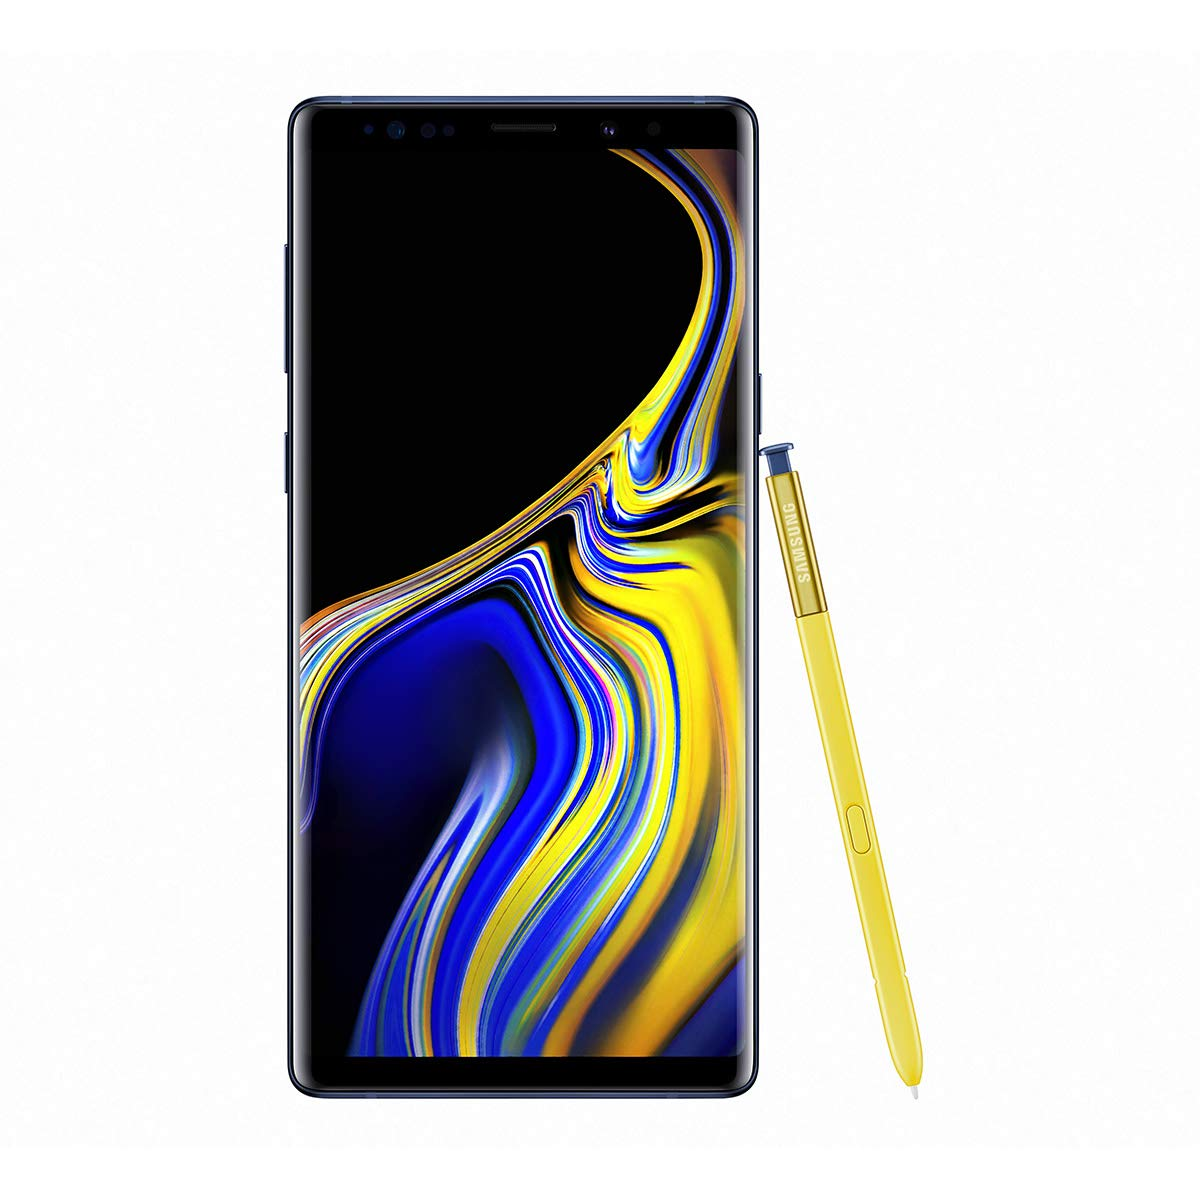 TALLA 512 GB. Samsung SM-N960F/DS Galaxy Note9, 6.4